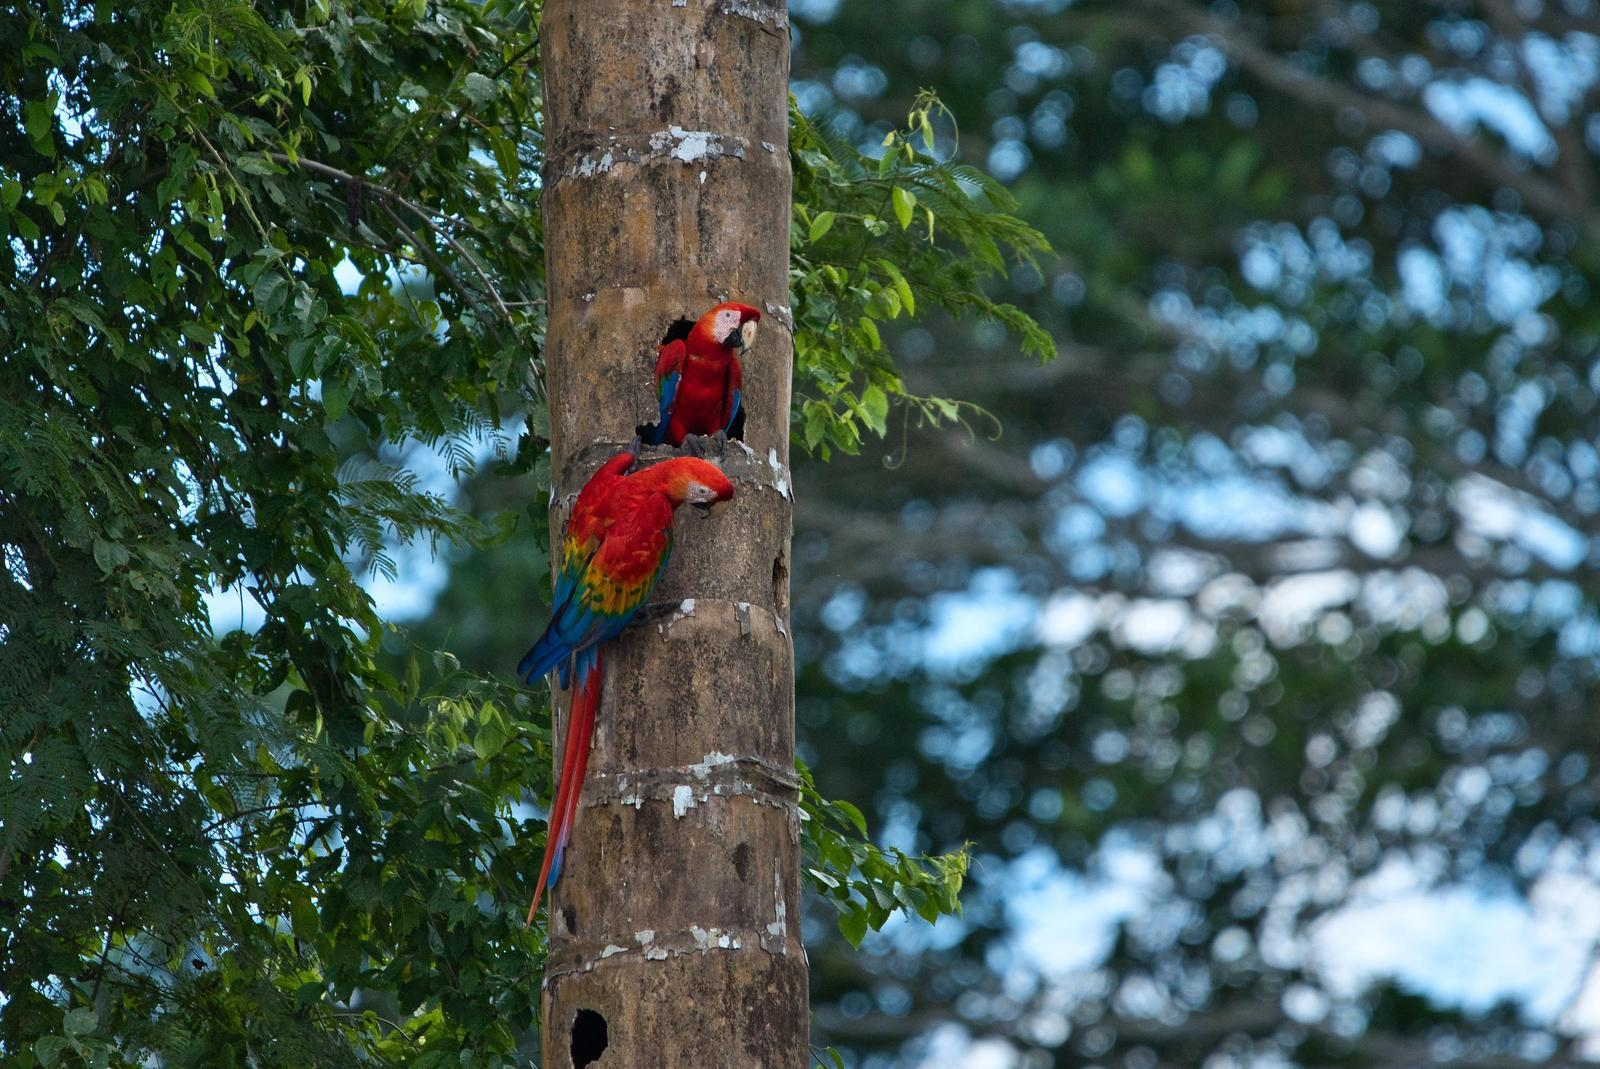 Red-and-green Macaw Photo by Didier Ryter